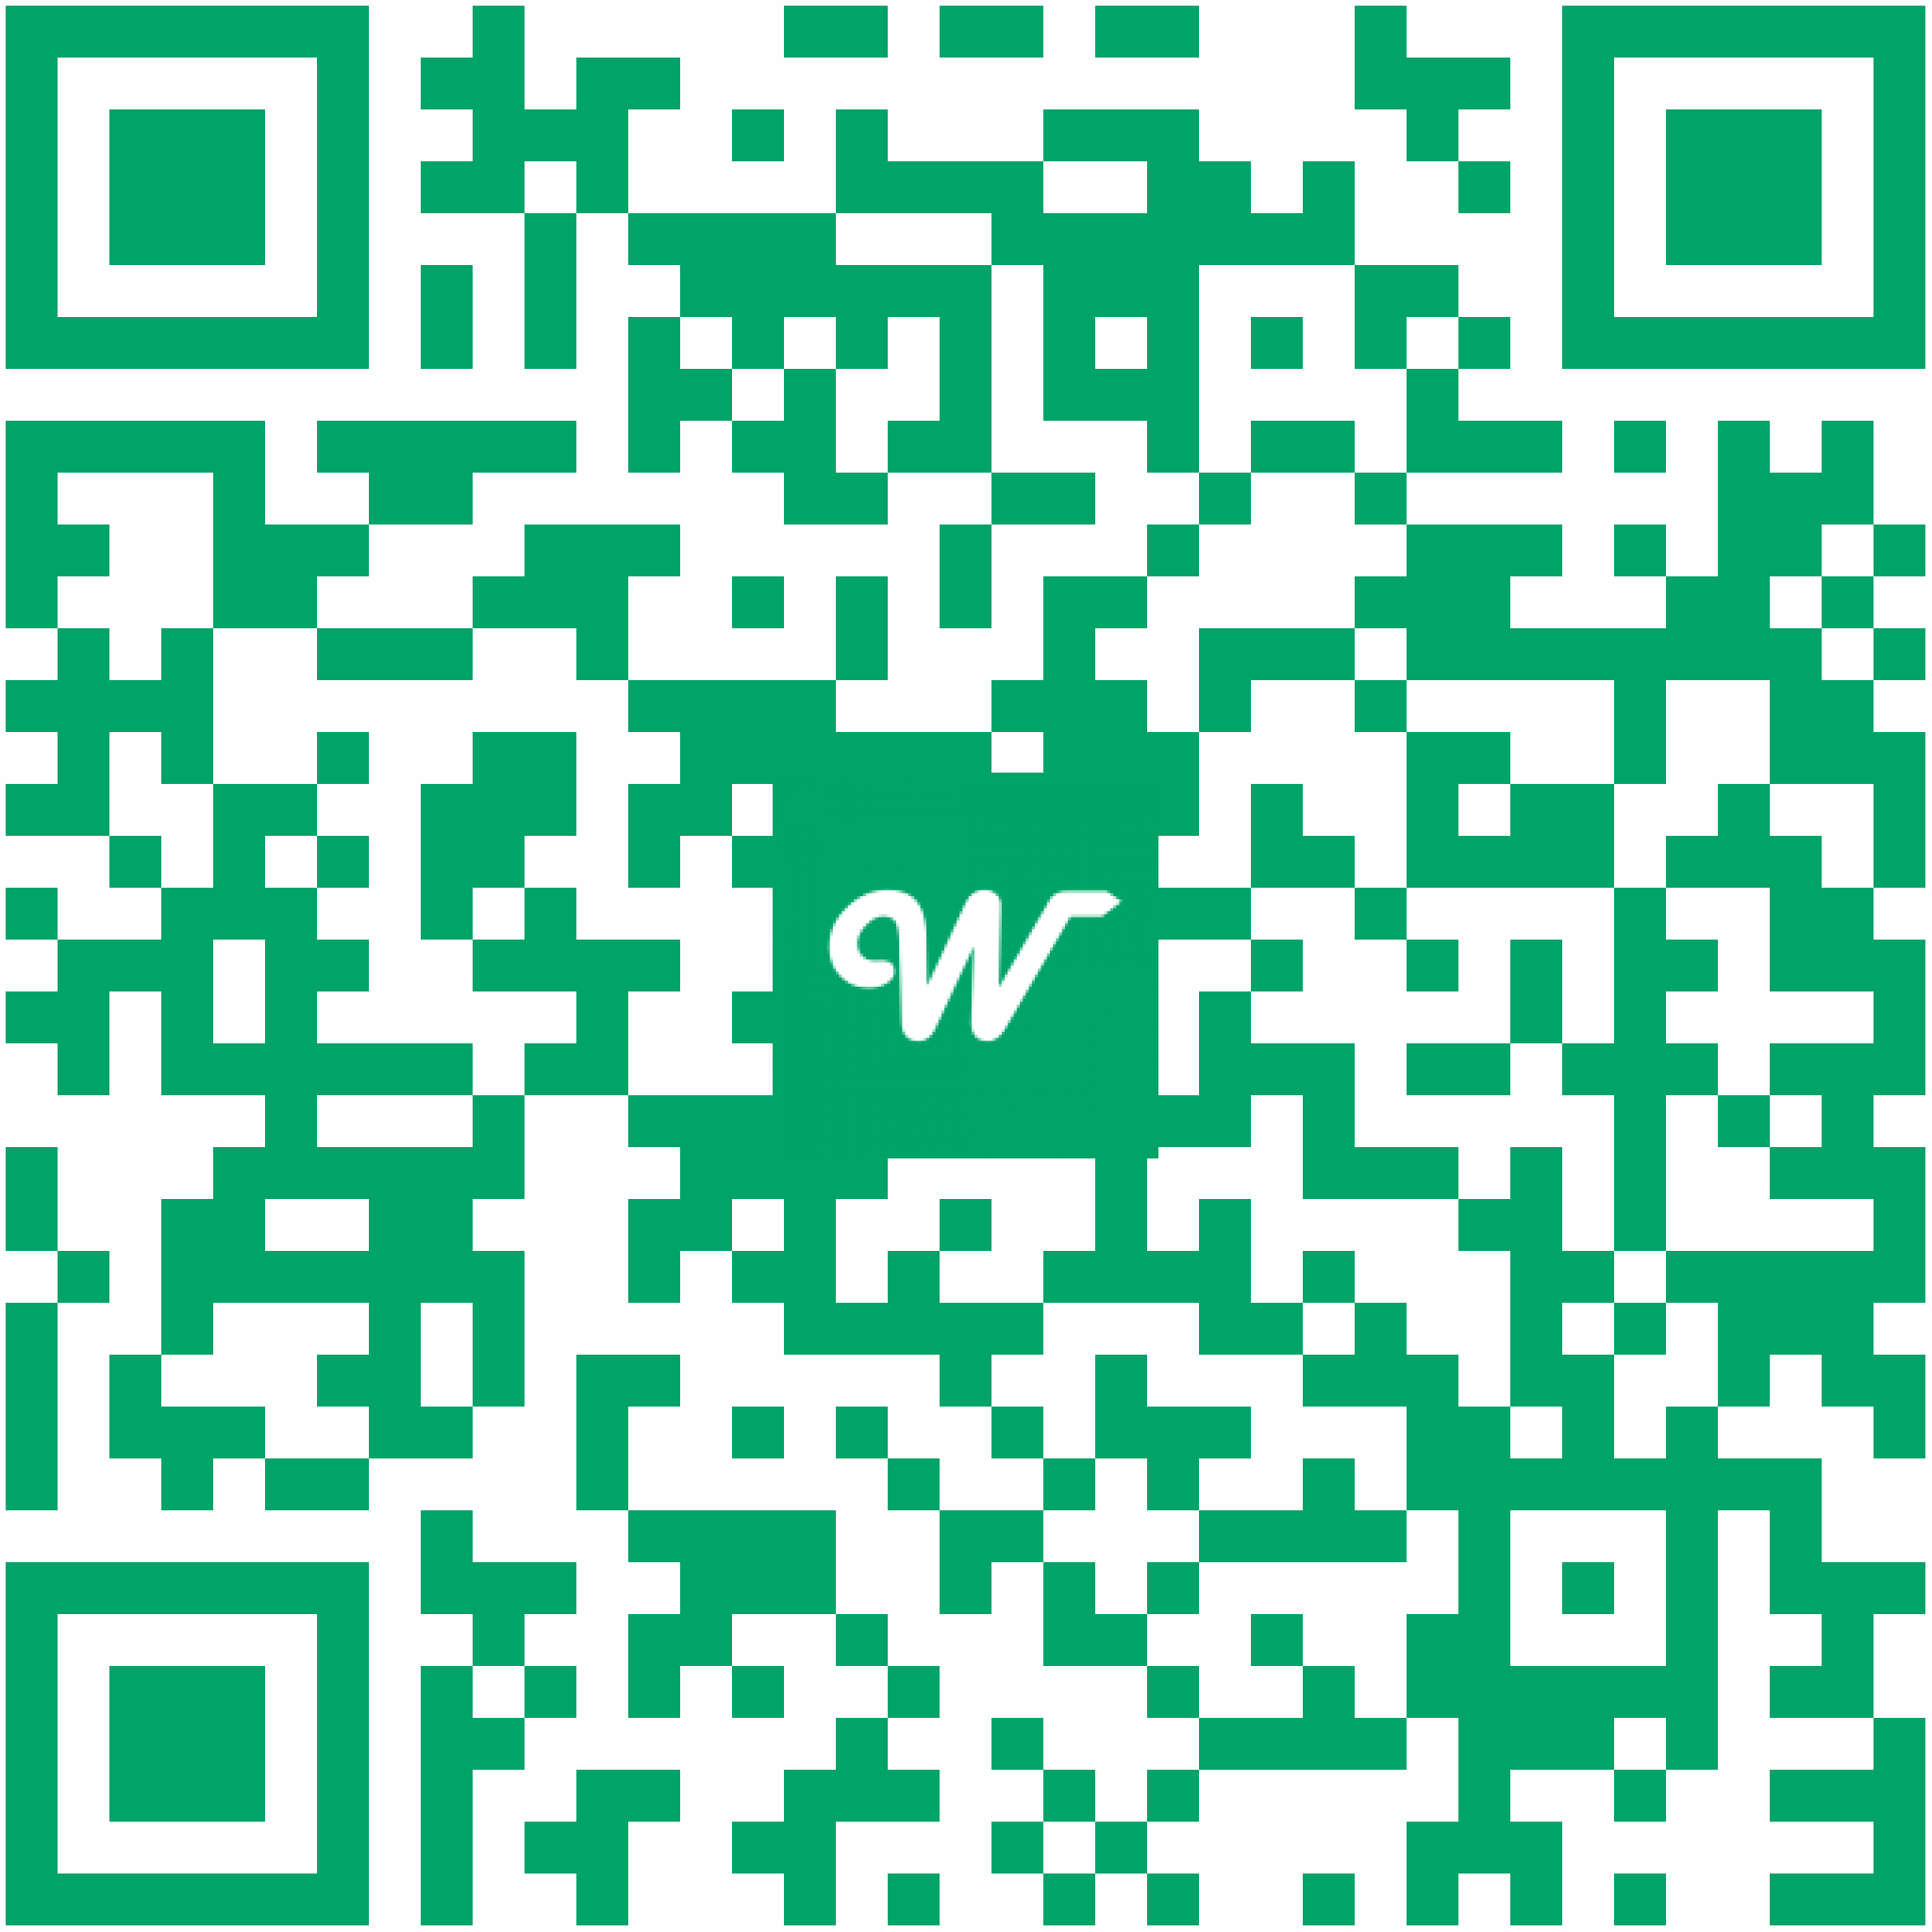 Printable QR code for Sun Inns Hotel Sitiawan